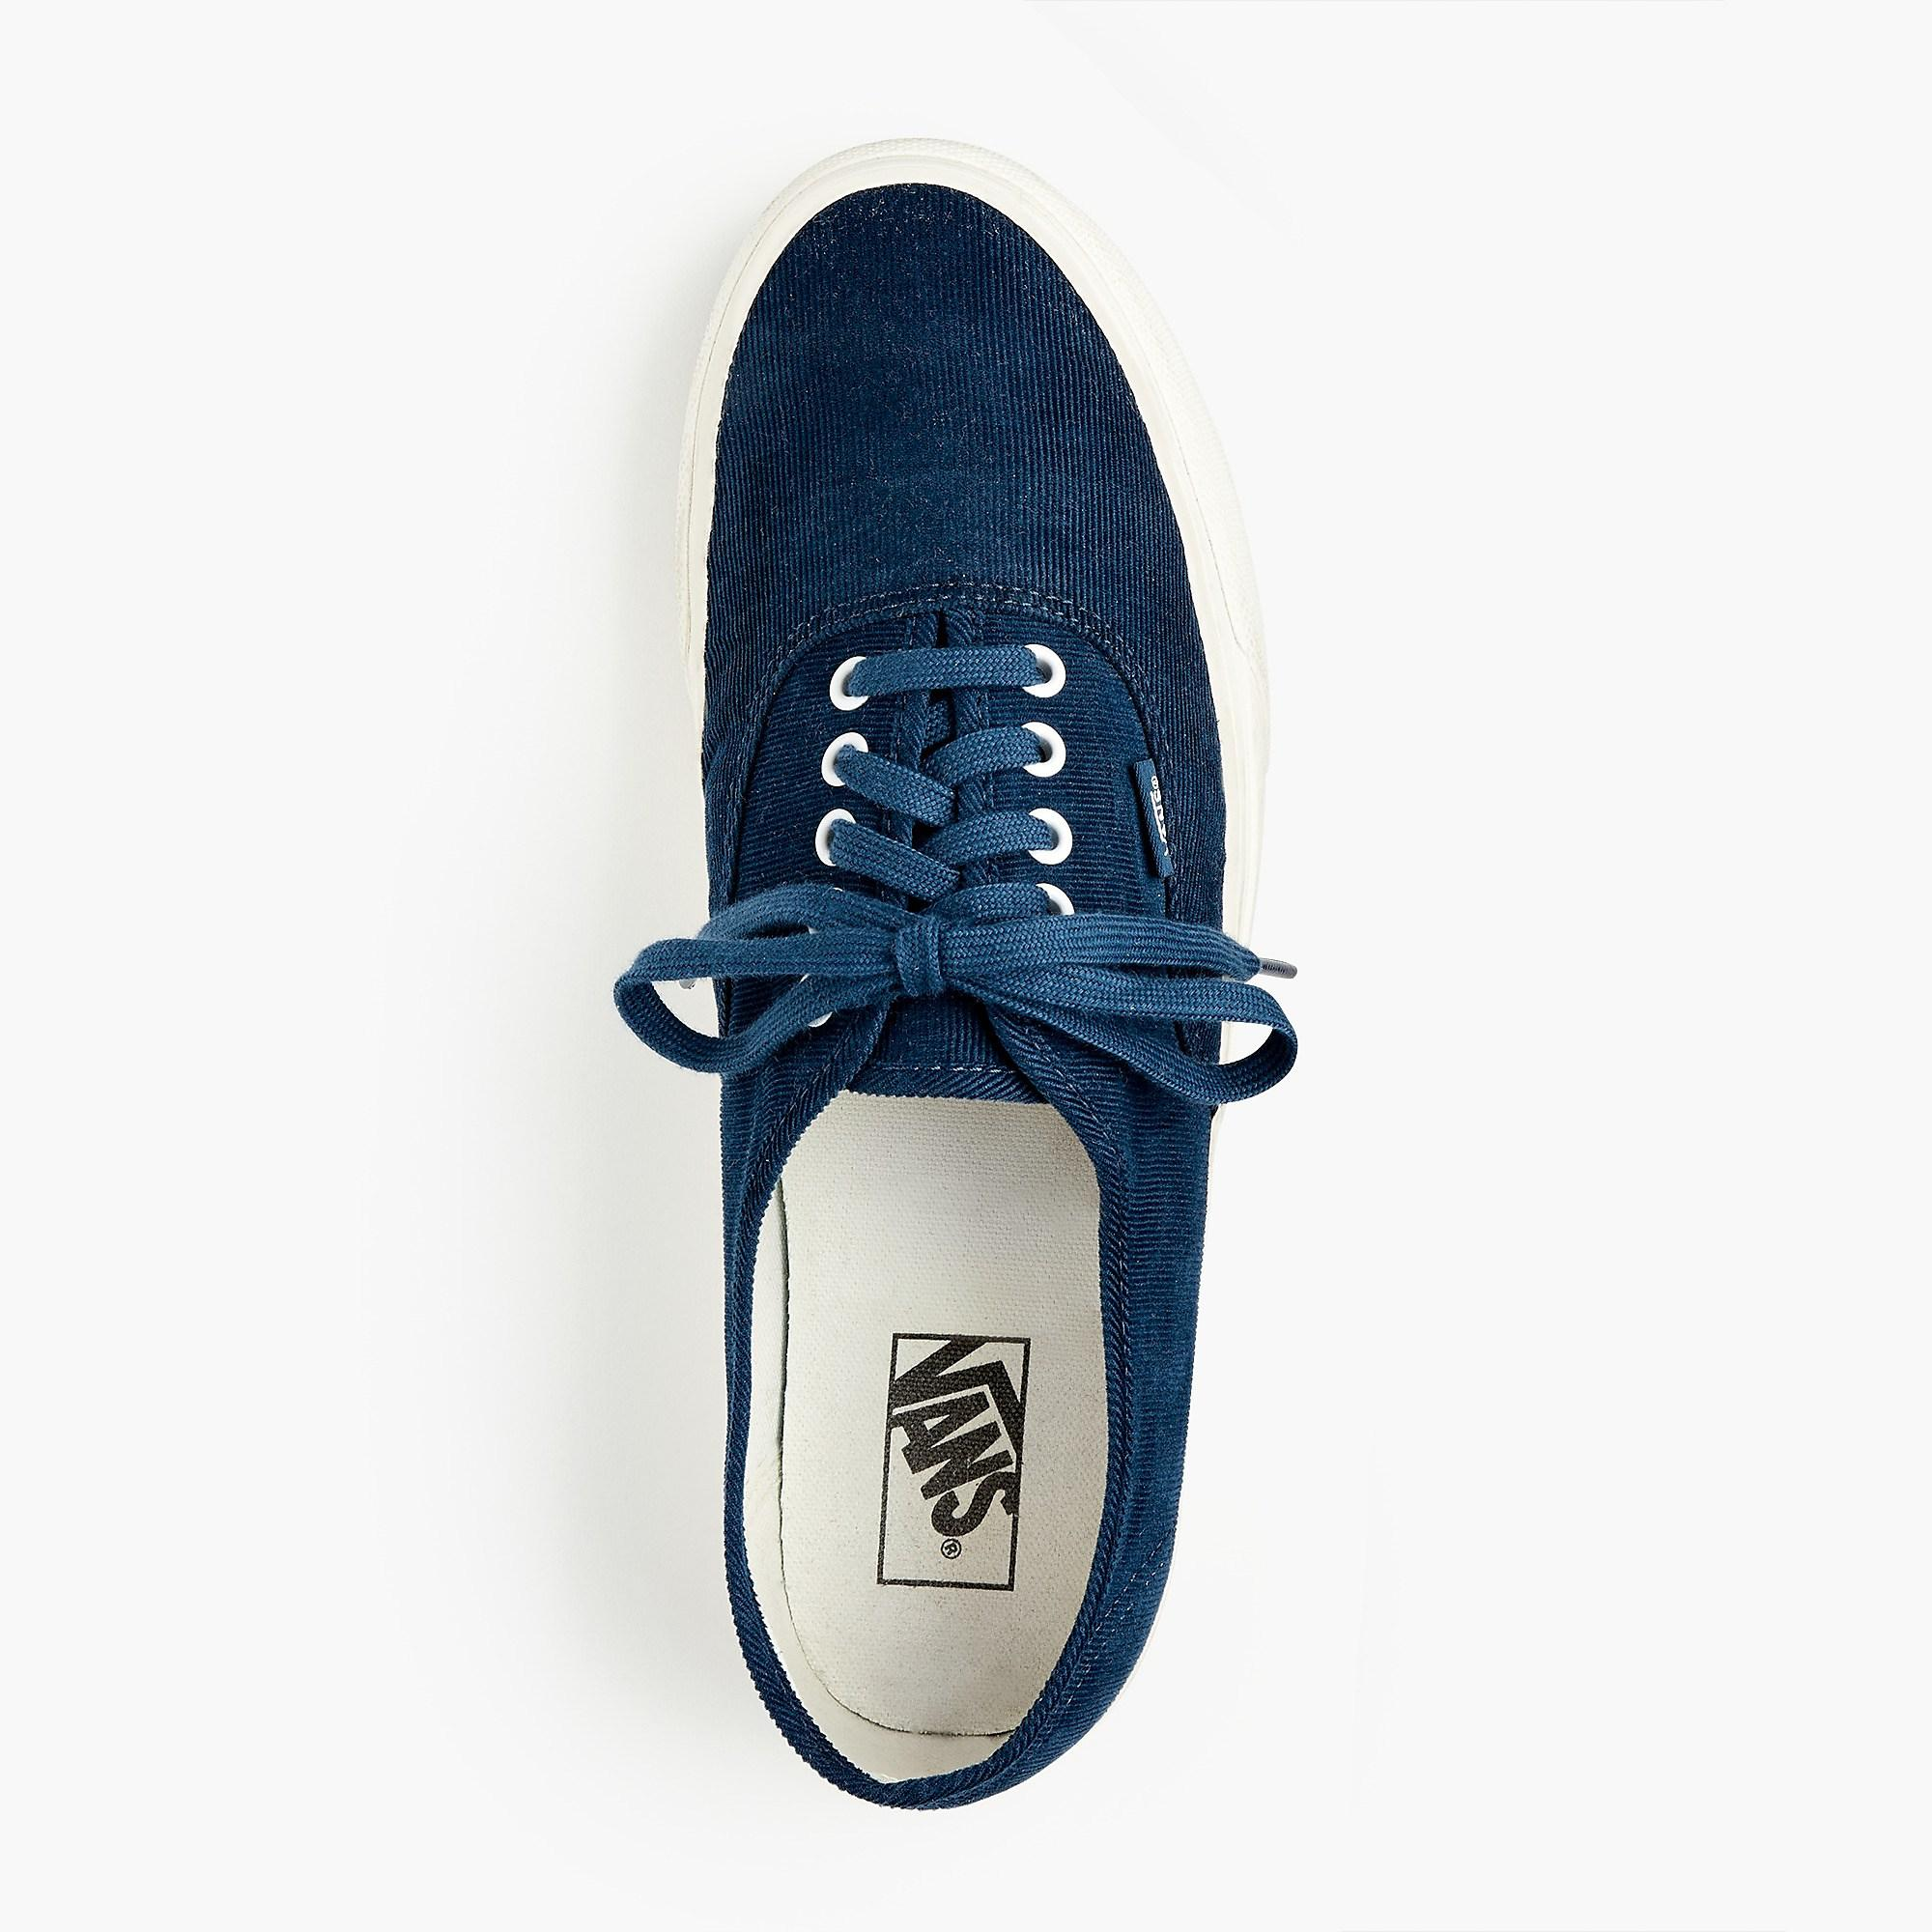 d00655e8fde0c2 Lyst - Vans Authentic Sneakers In Bedford Cord in Blue for Men